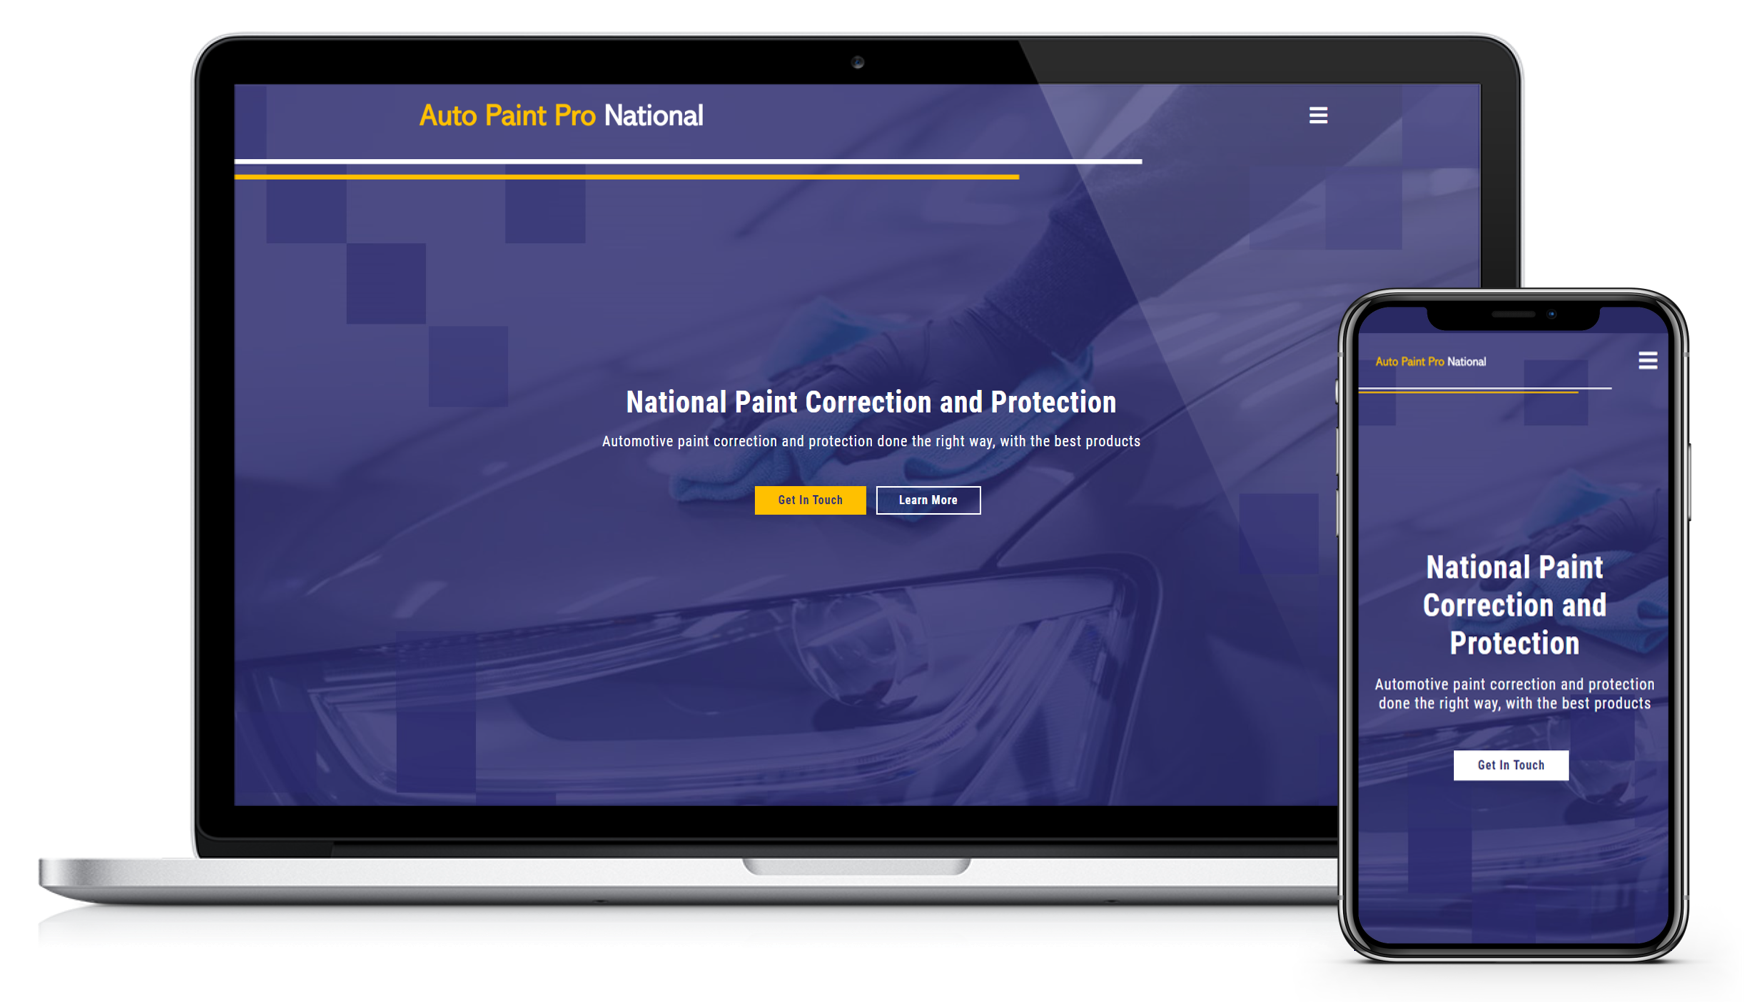 Auto Paint Pro National Website